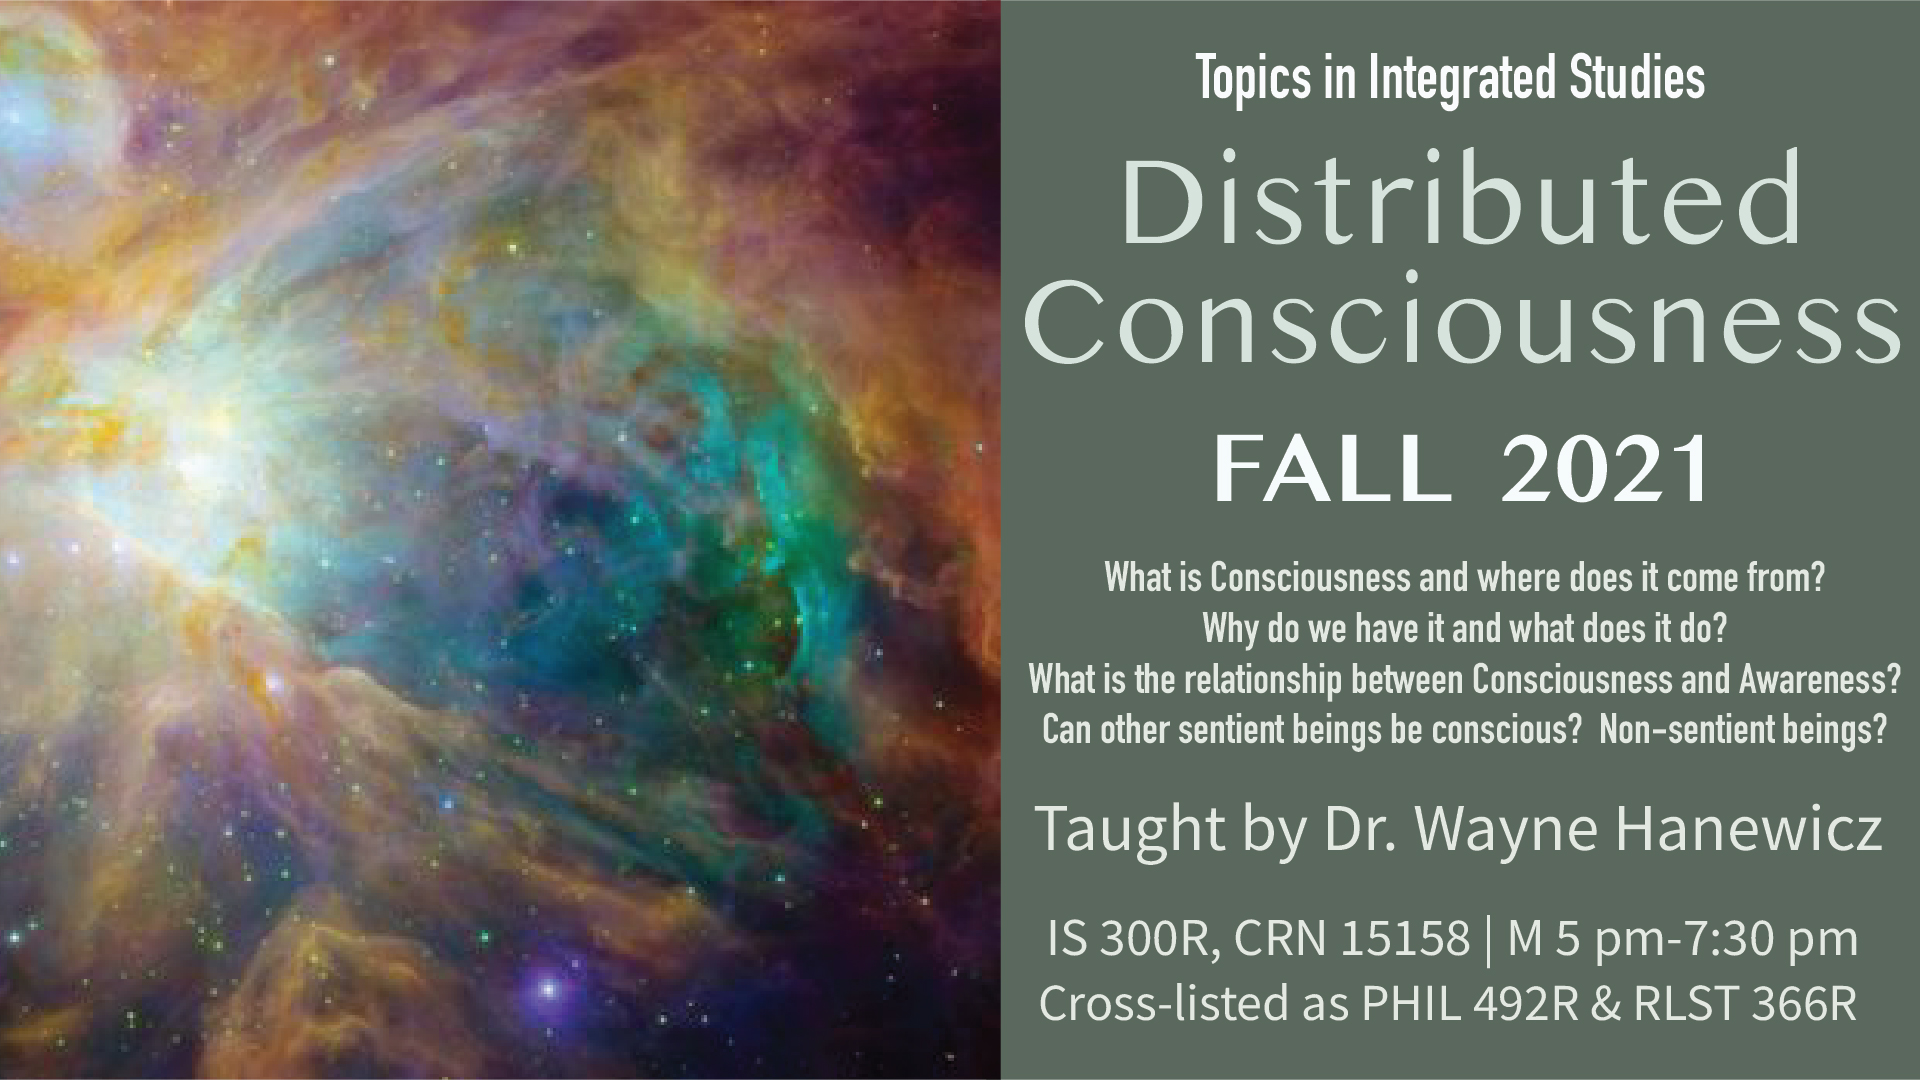 Distributed Consciousness Fall 2021 course poster